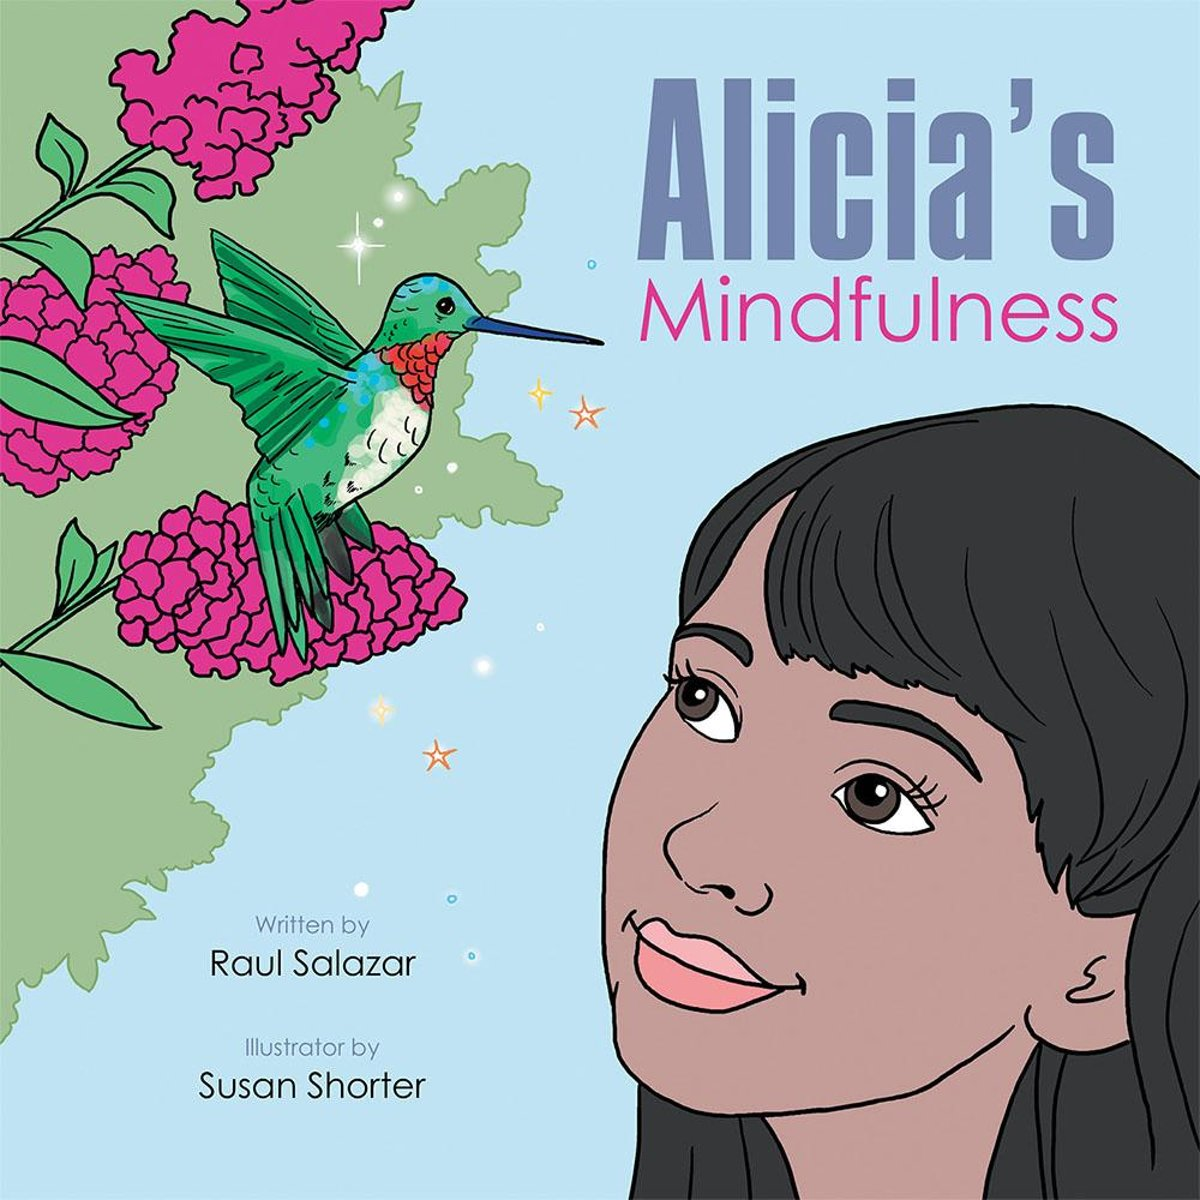 Alicia'S Mindfulness